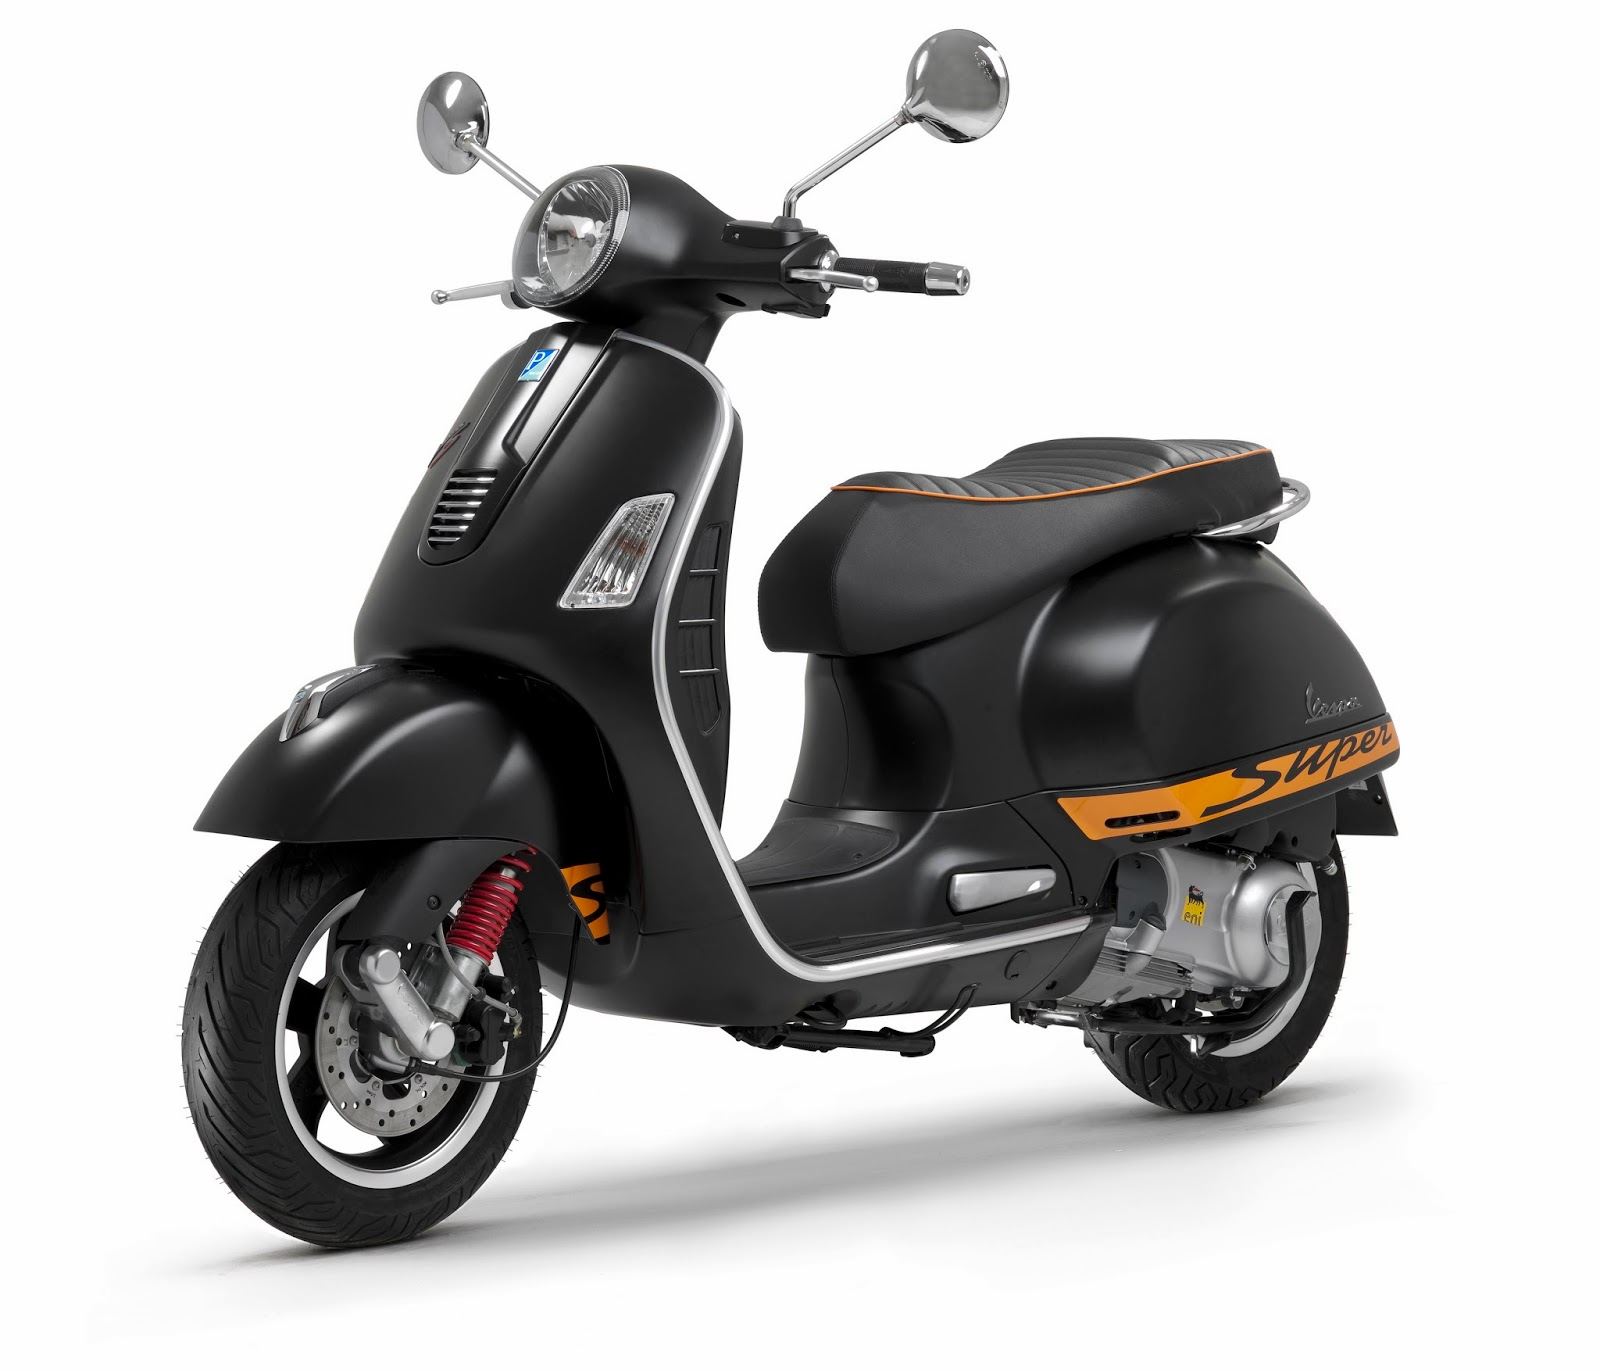 loja das motos vespa gts super sport 125 e 300. Black Bedroom Furniture Sets. Home Design Ideas